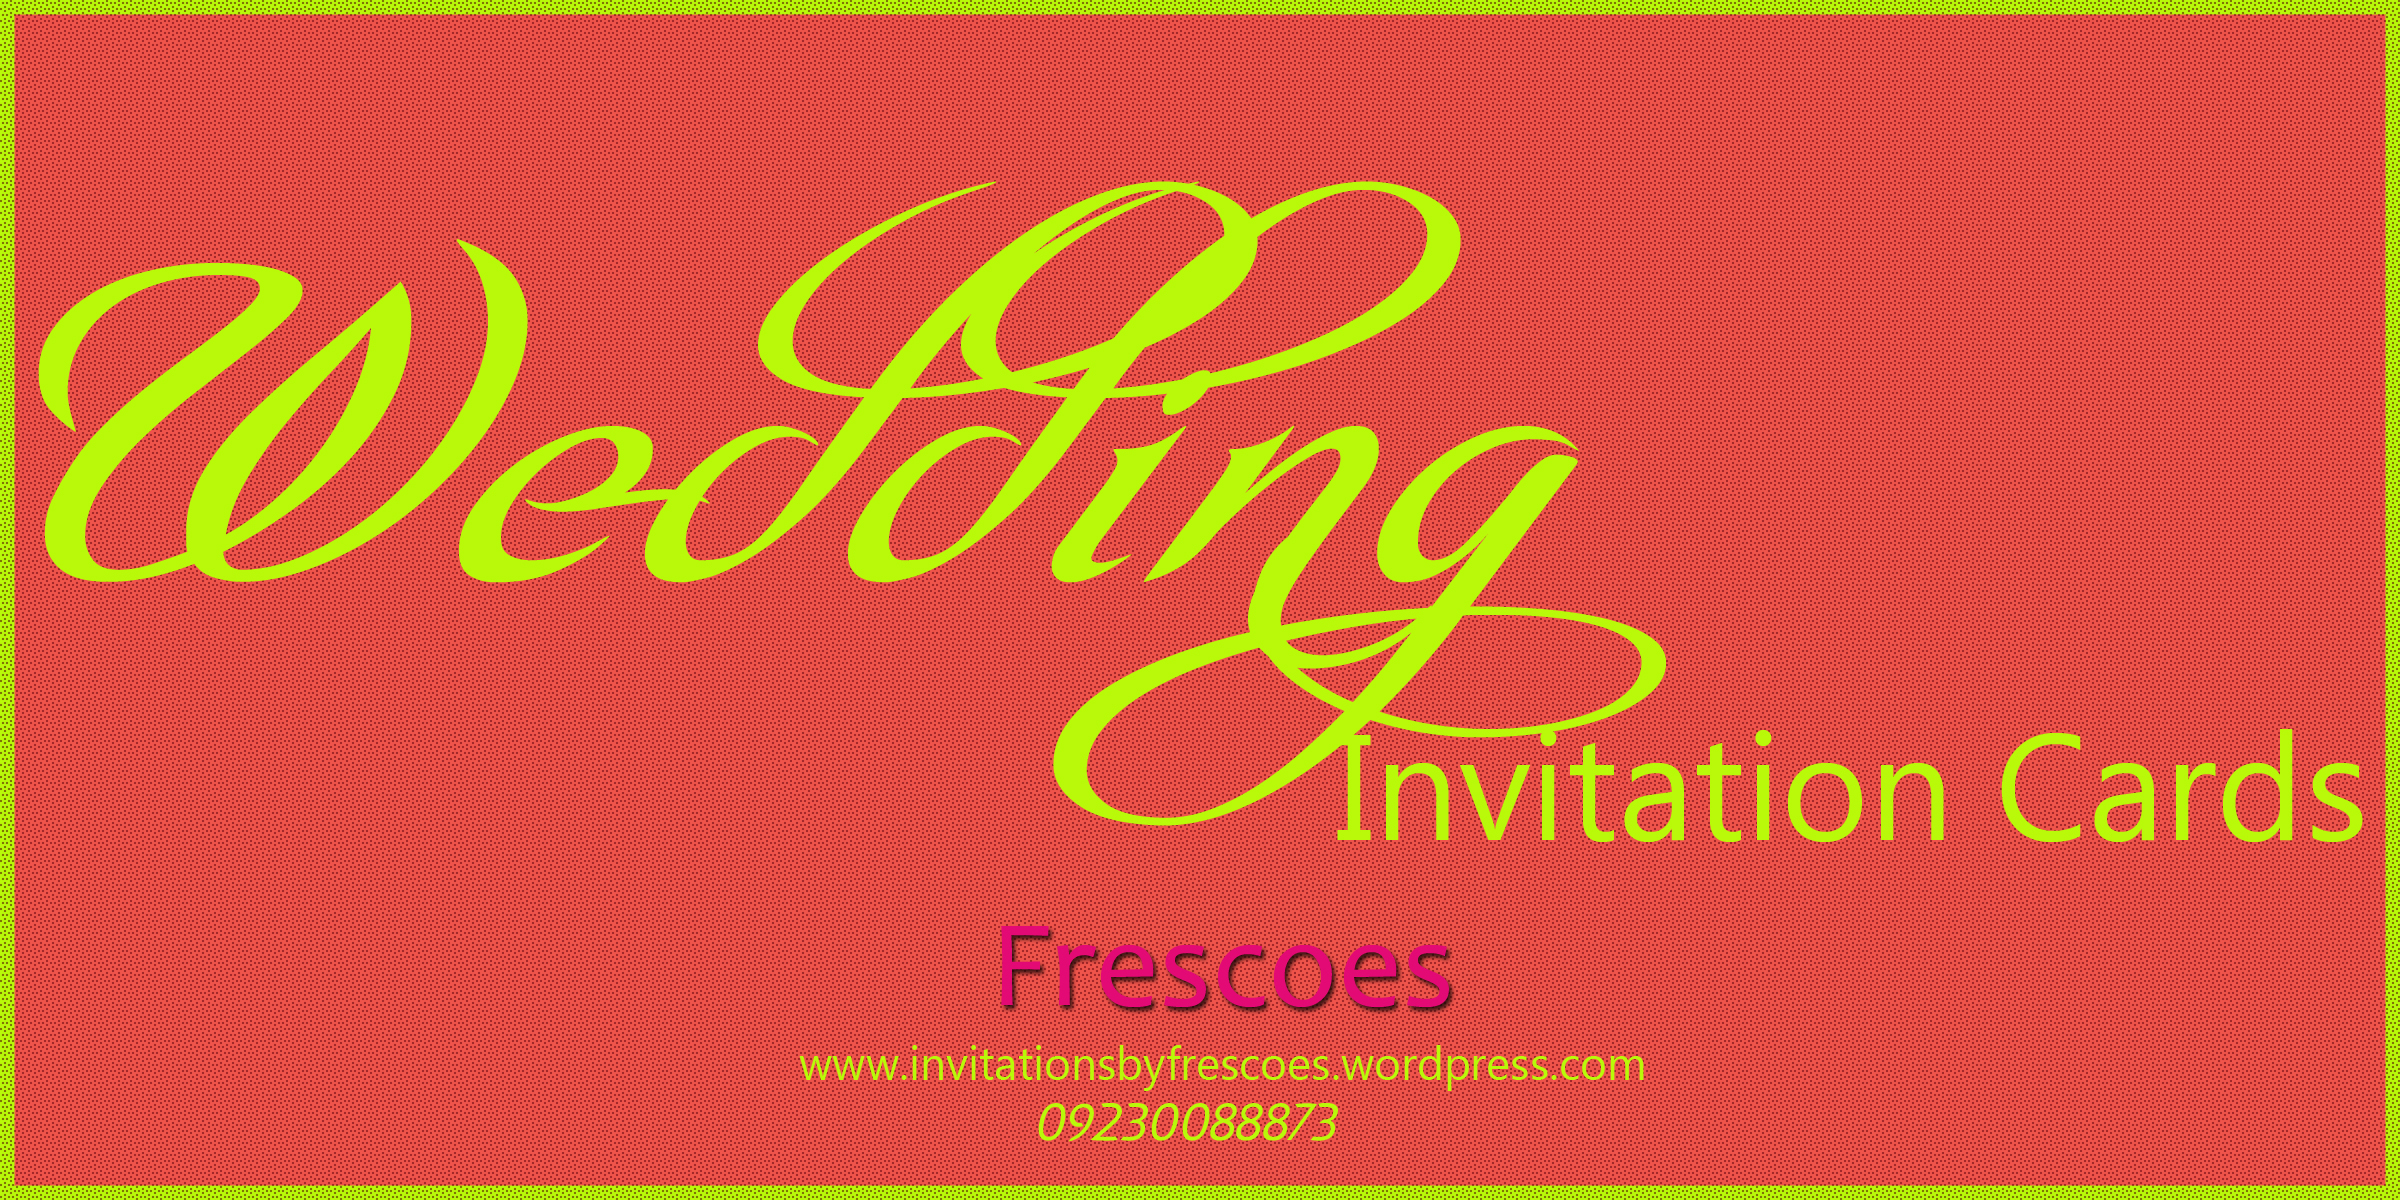 frescoes specialty packaging boxes in india Wedding Cards Wholesale Kolkata Wedding Cards Wholesale Kolkata #3 wedding cards wholesale kolkata